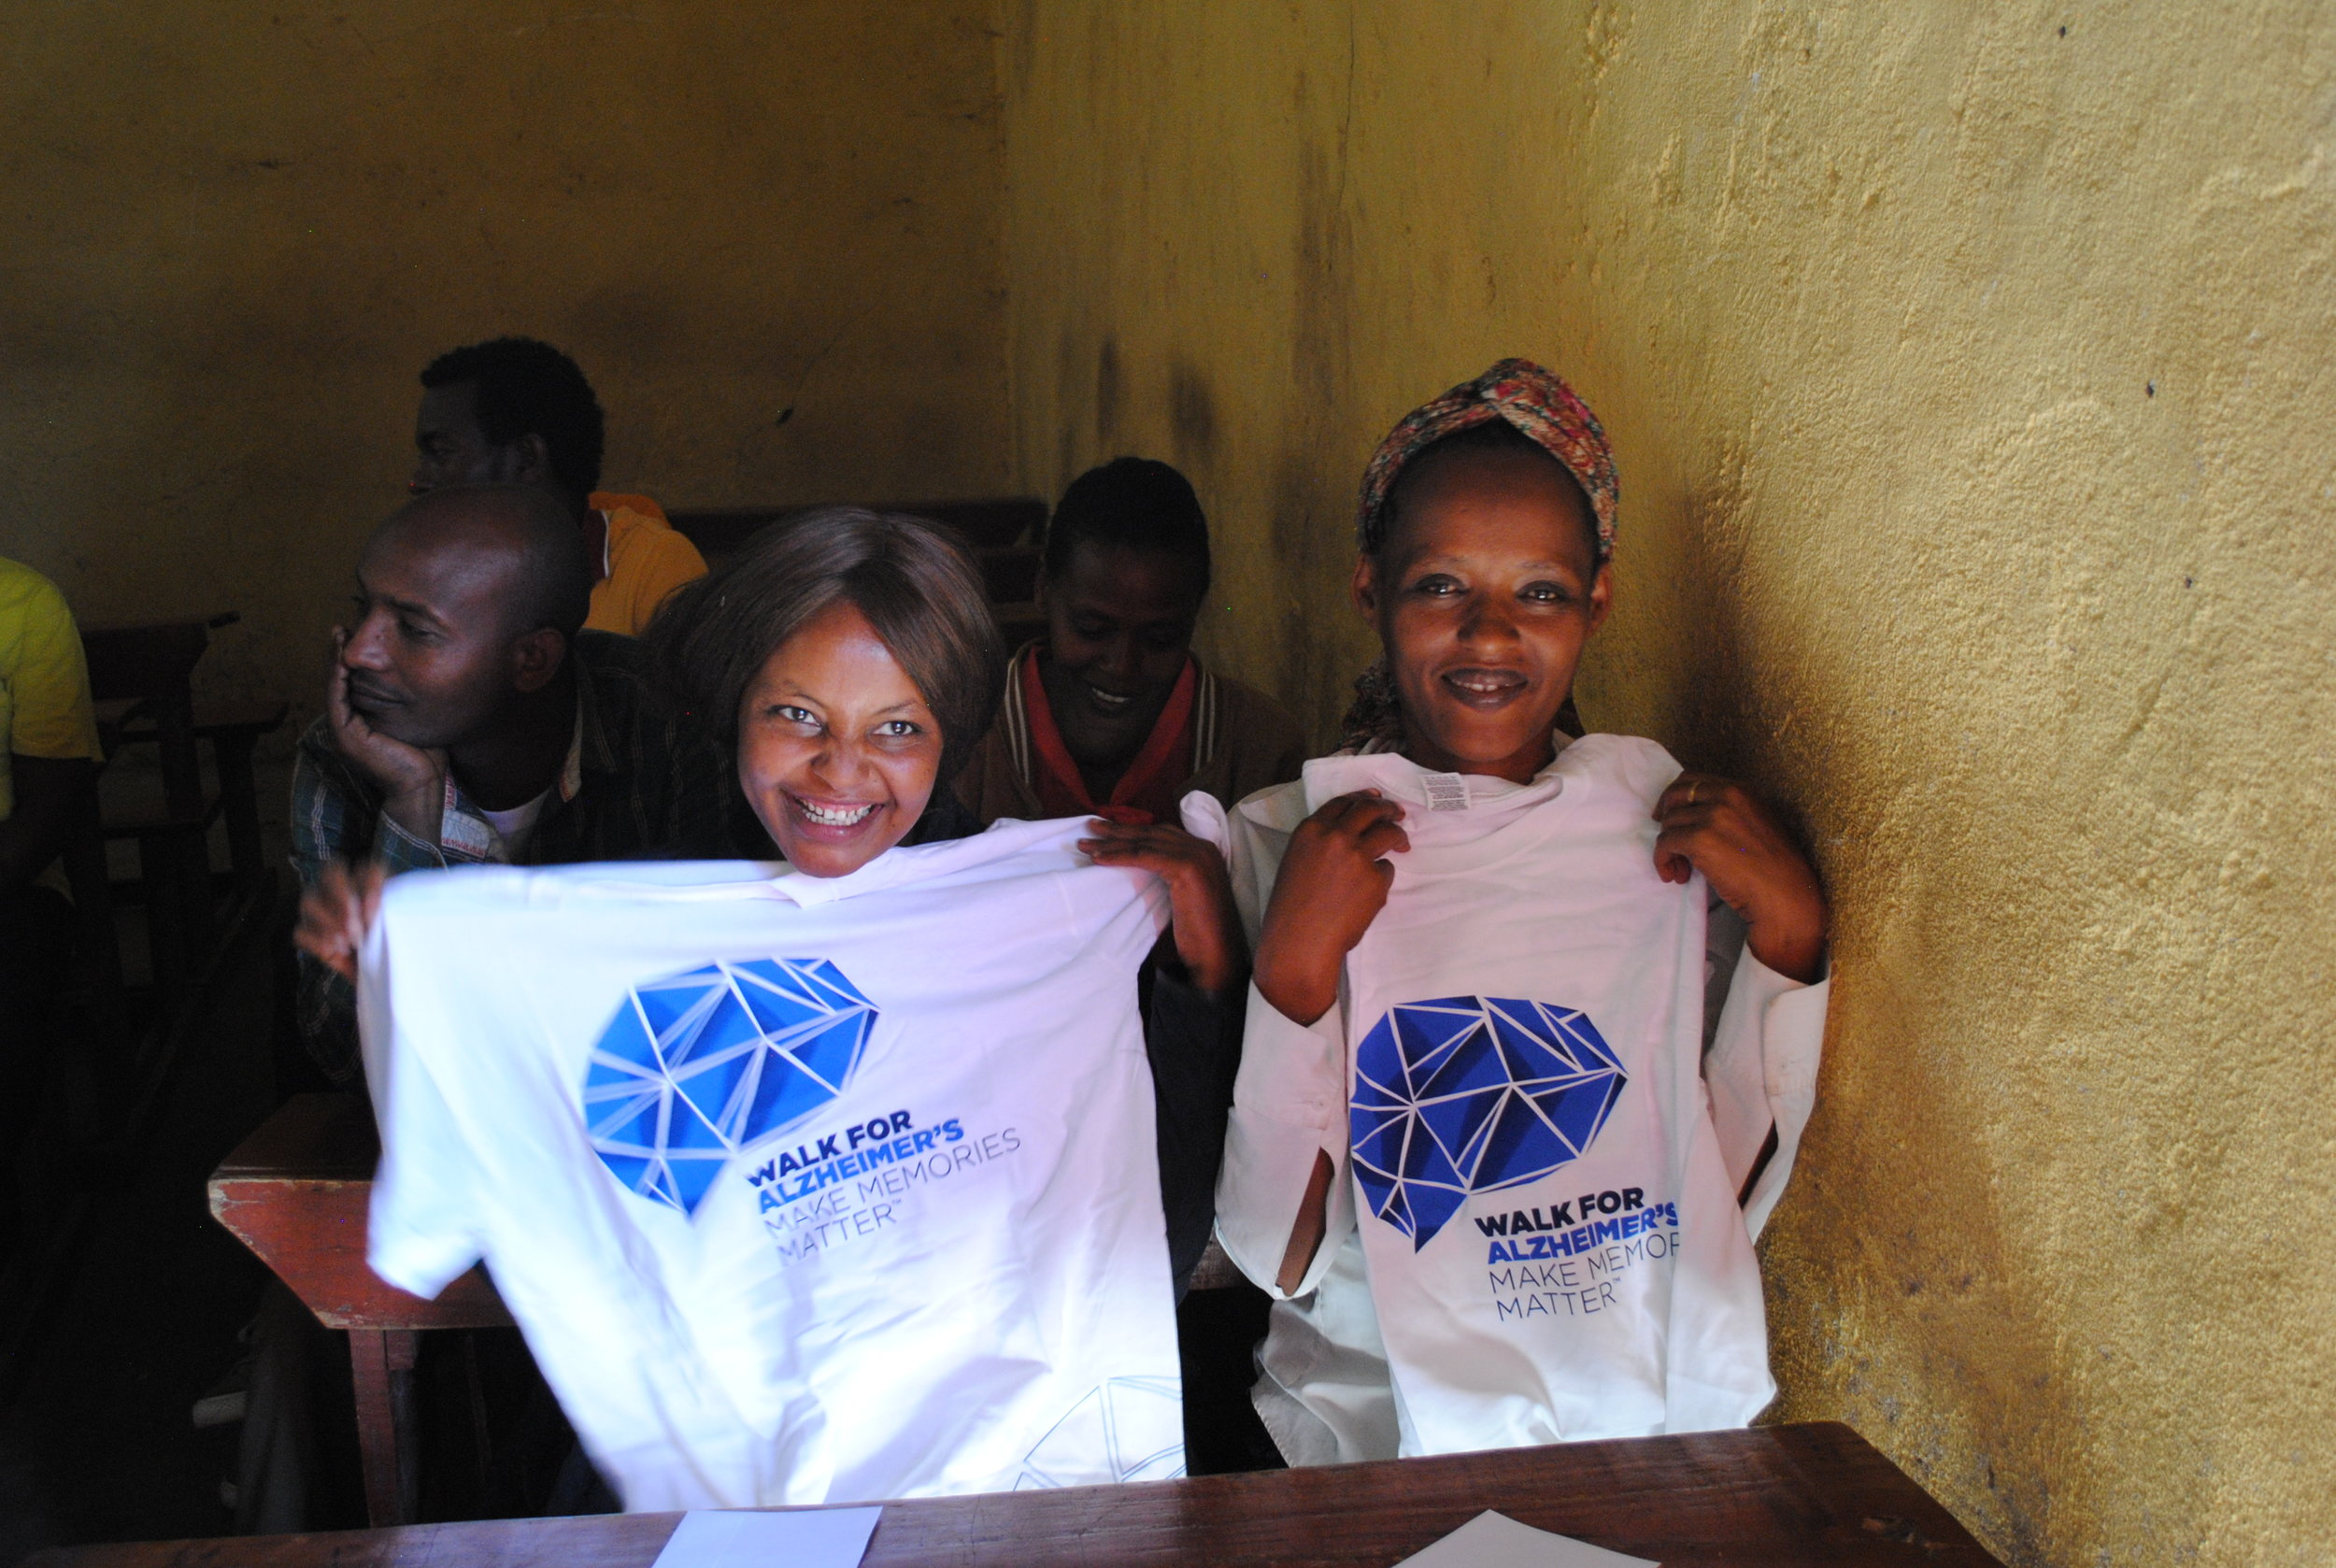 MWAHFE volunteers handed out clothing to the teachers at Gallo Shanto school in 2017.